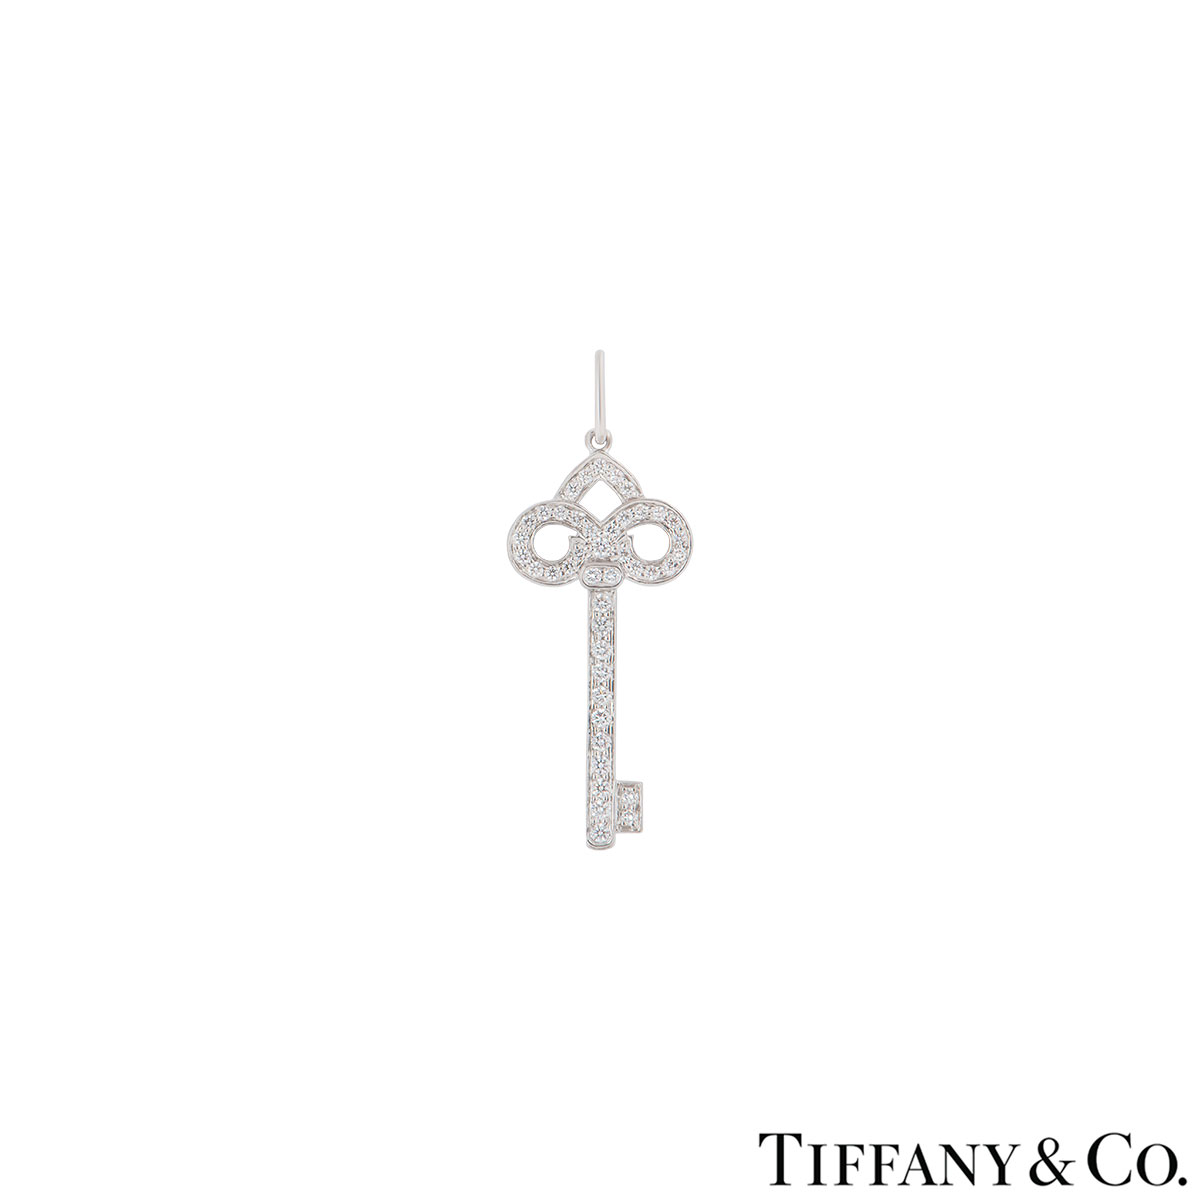 e939ce1d3 Tiffany & Co. Platinum Diamond Fleur De Lis Key Pendant